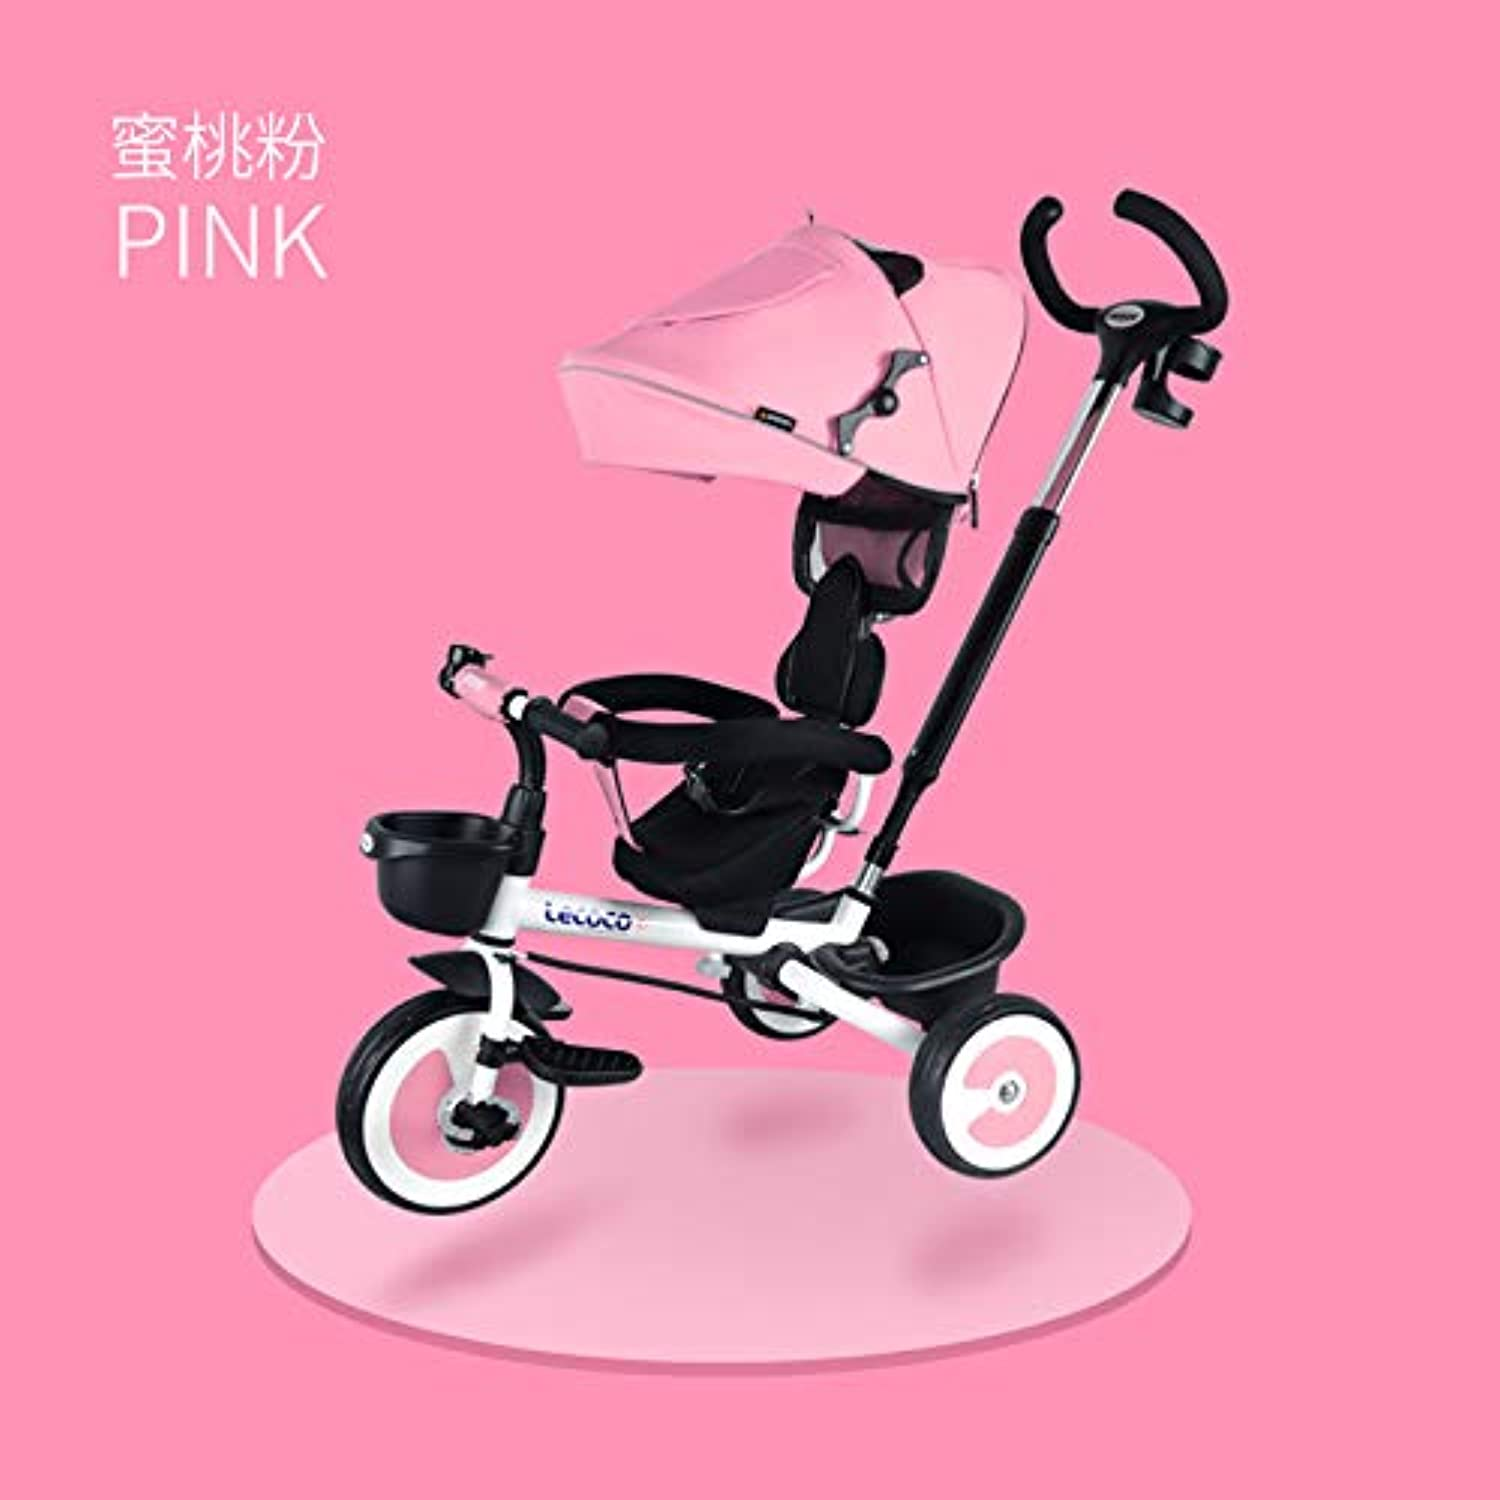 Lecoco Music Card Tricycle Folding Bike Stroller Baby Stroller 136 Baby Slipped Artifact